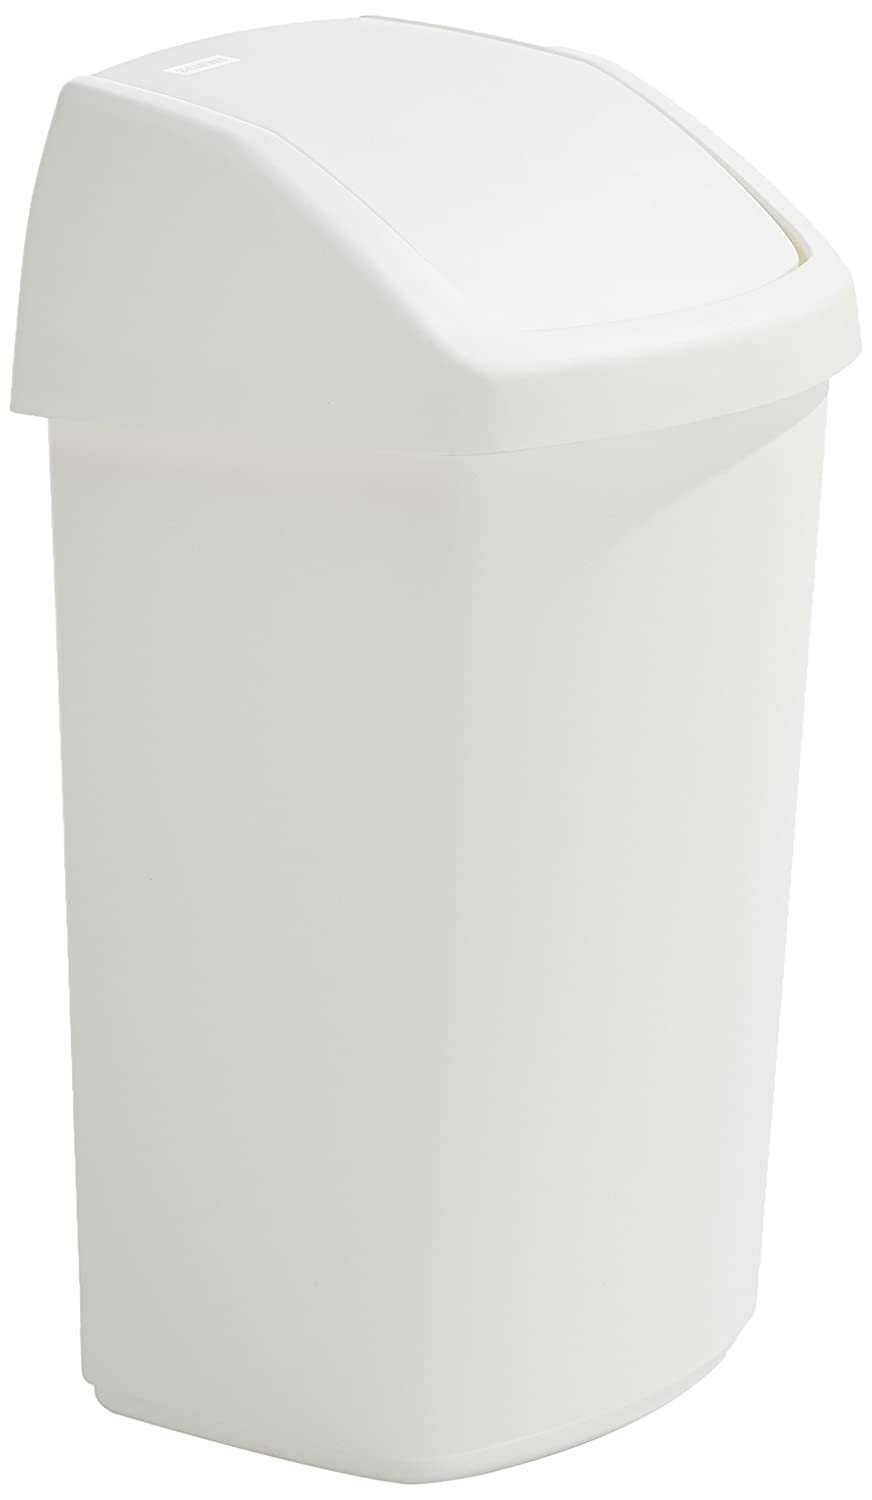 Rubbermaid Commercial Products R000881 Schwingdeckel Abfallbehä lter, 50 L (3-er Pack) Newell Rubbermaid